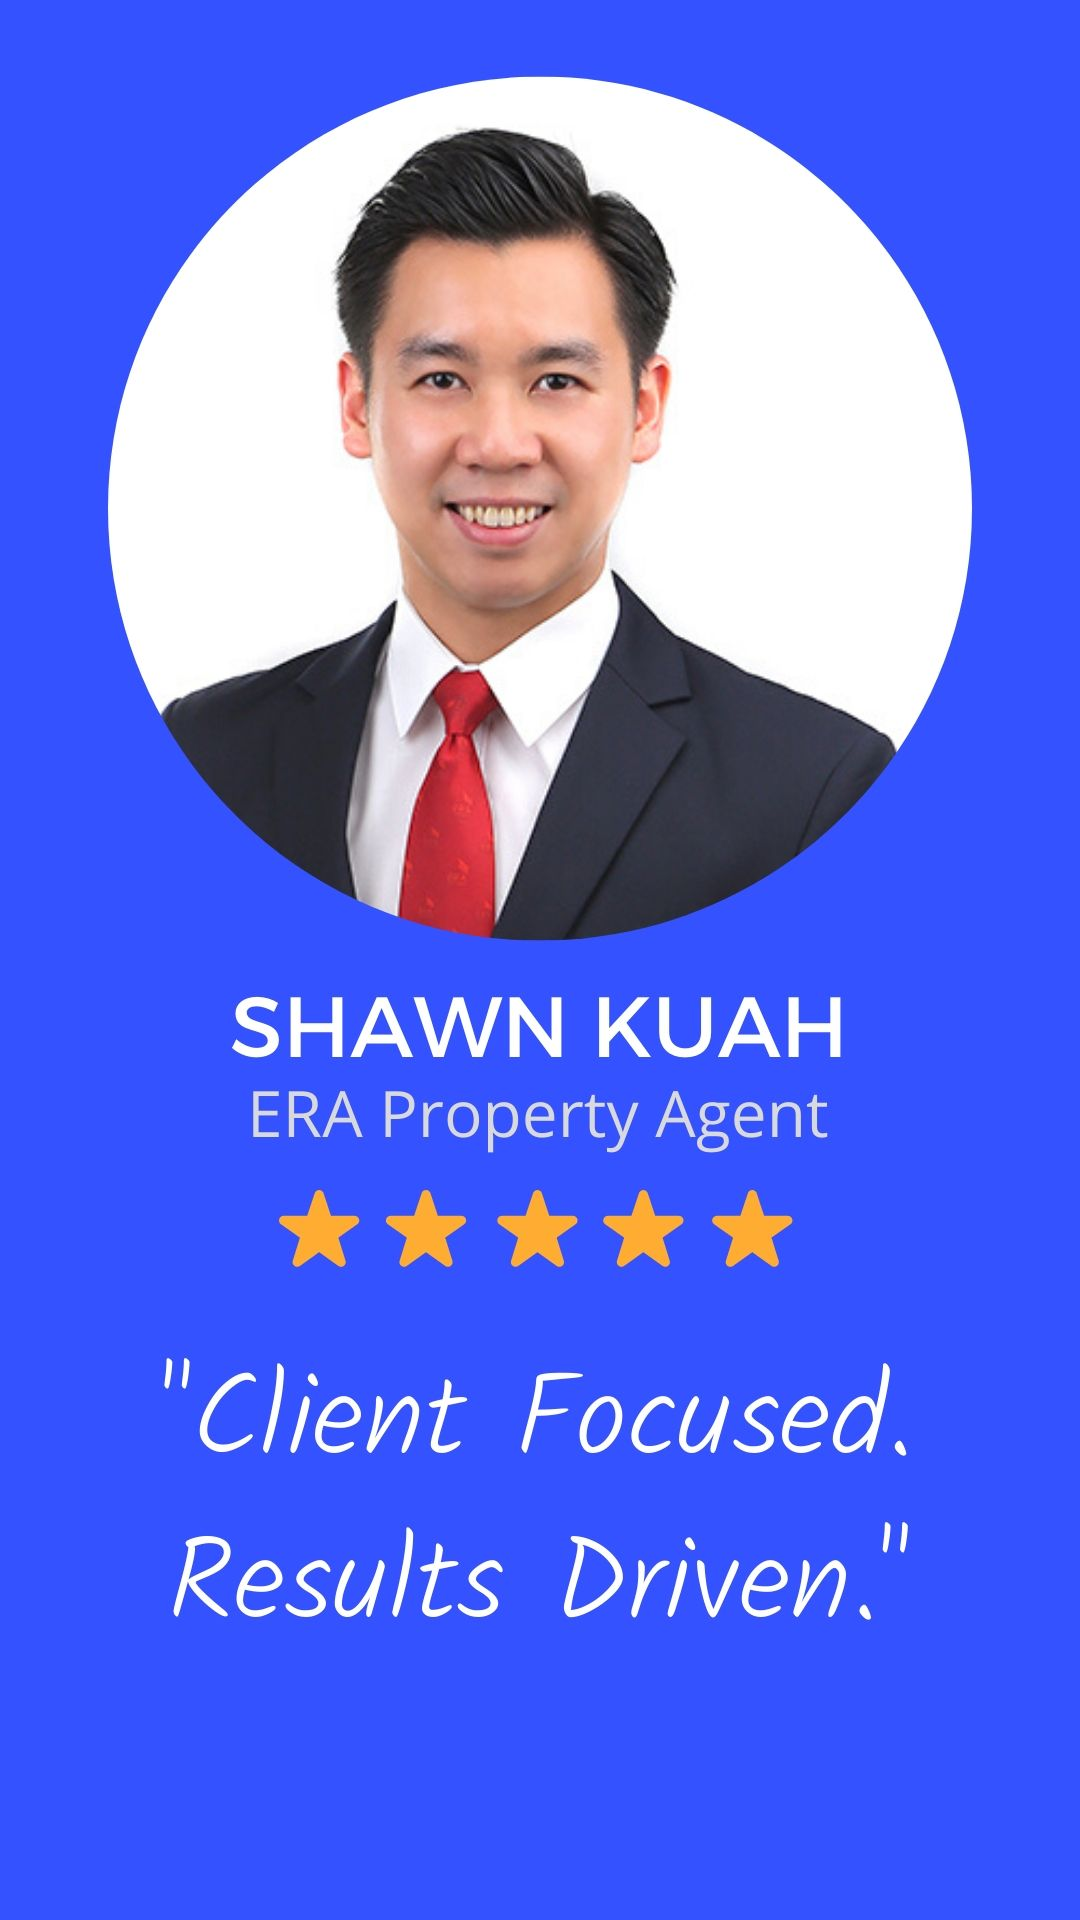 Shawn Kuah Property Agent